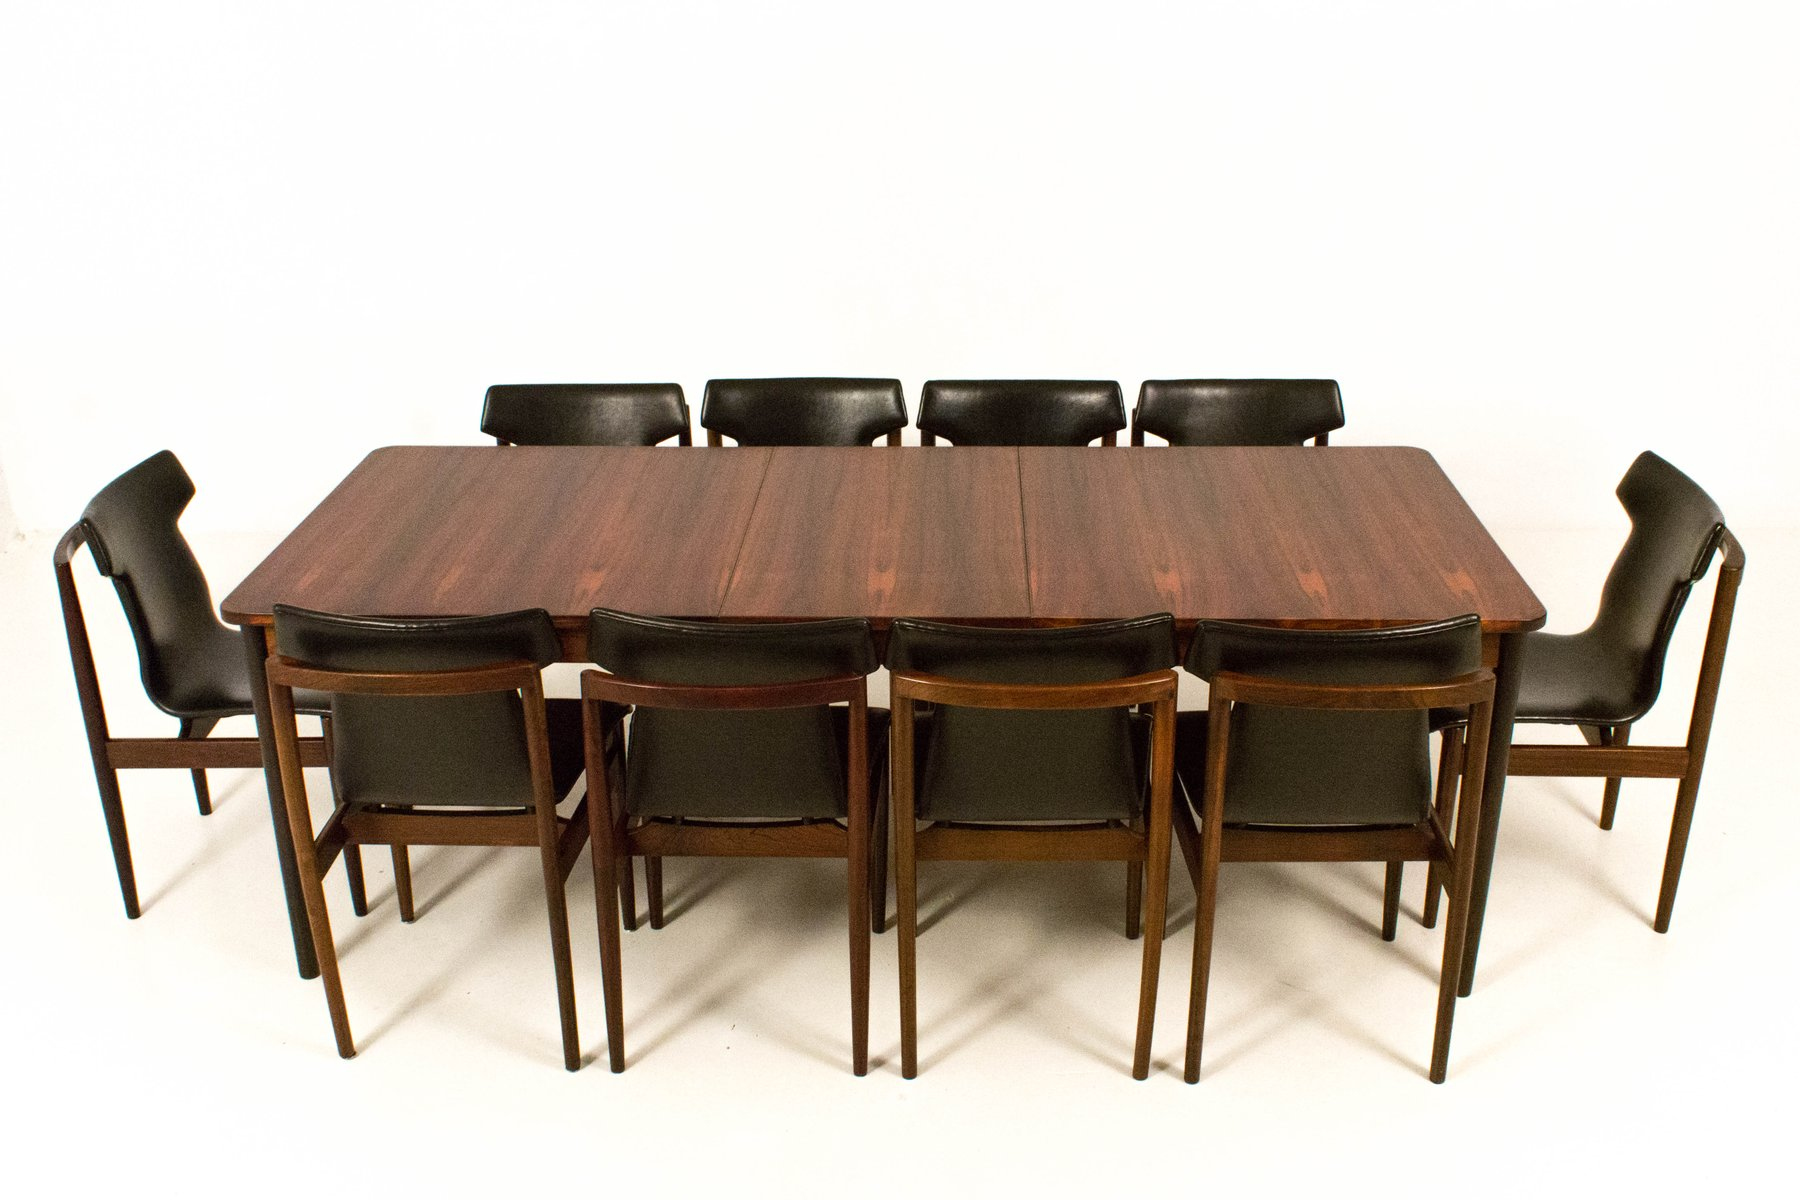 Mid Century Modern Large Extendable Dining Table From Fristho 1960s For Sale At Pamono